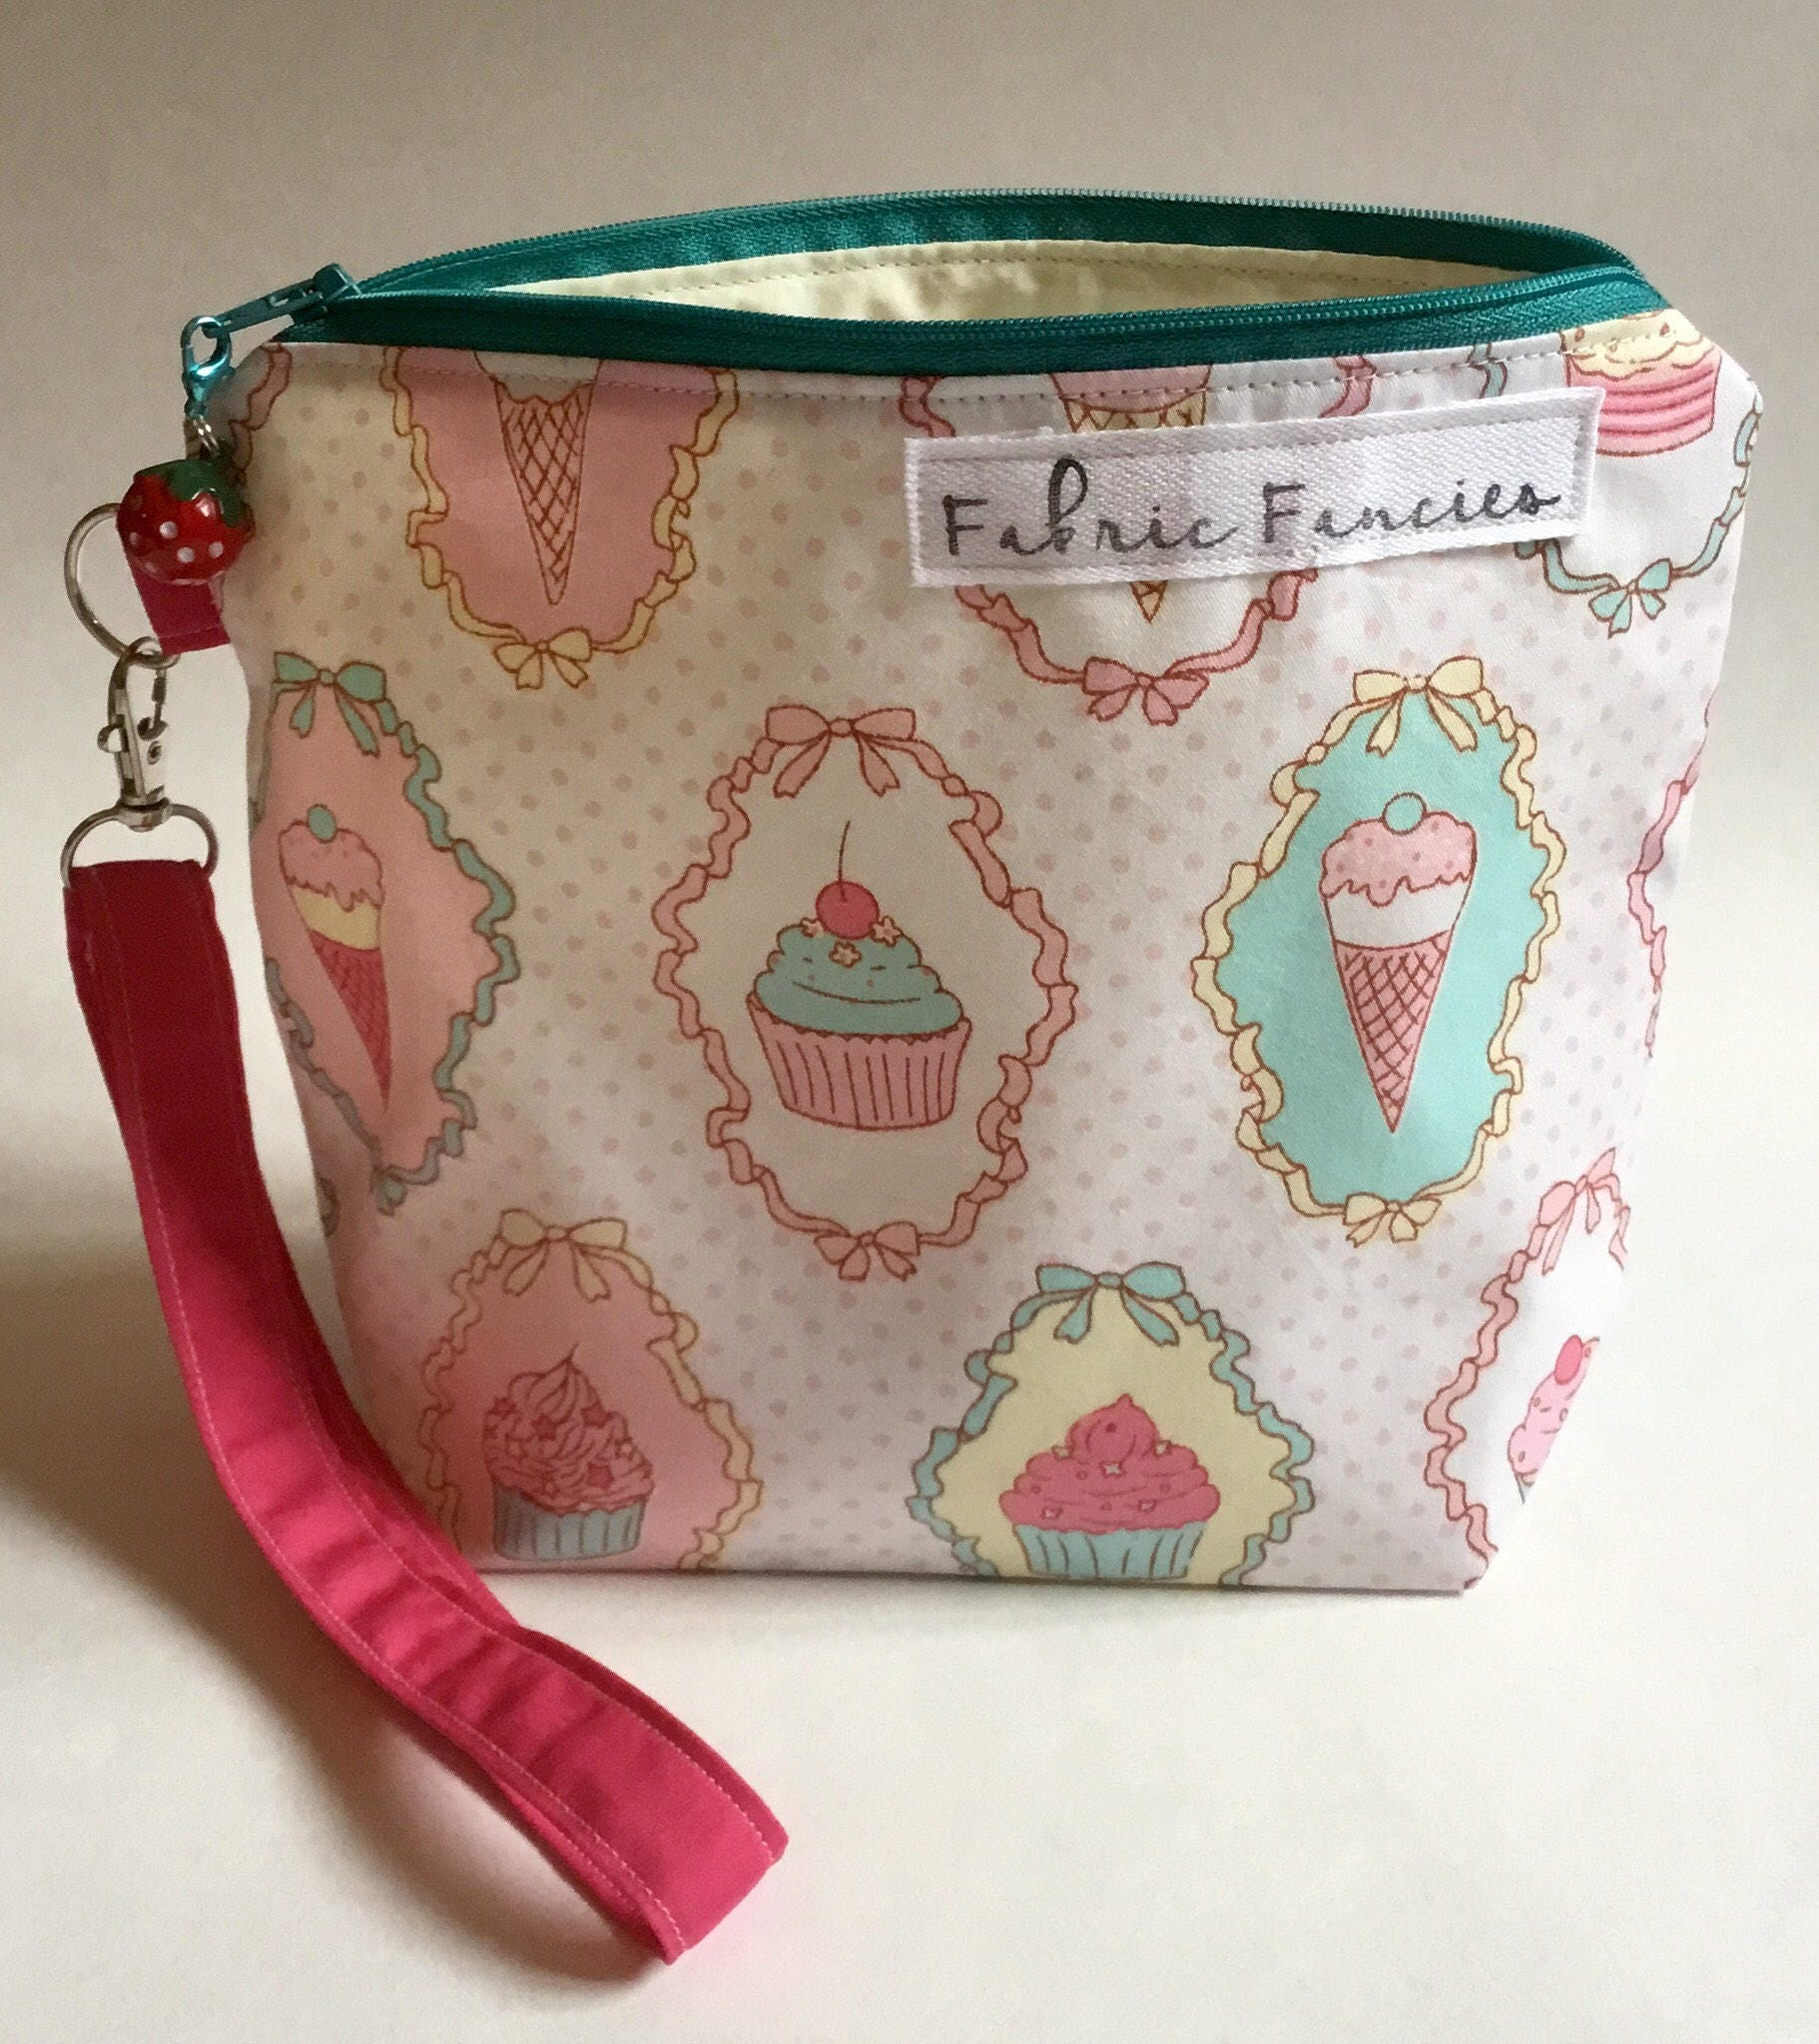 Project bag ice cream and cake pouch zipper bag cute yarn bag crochet knitting project